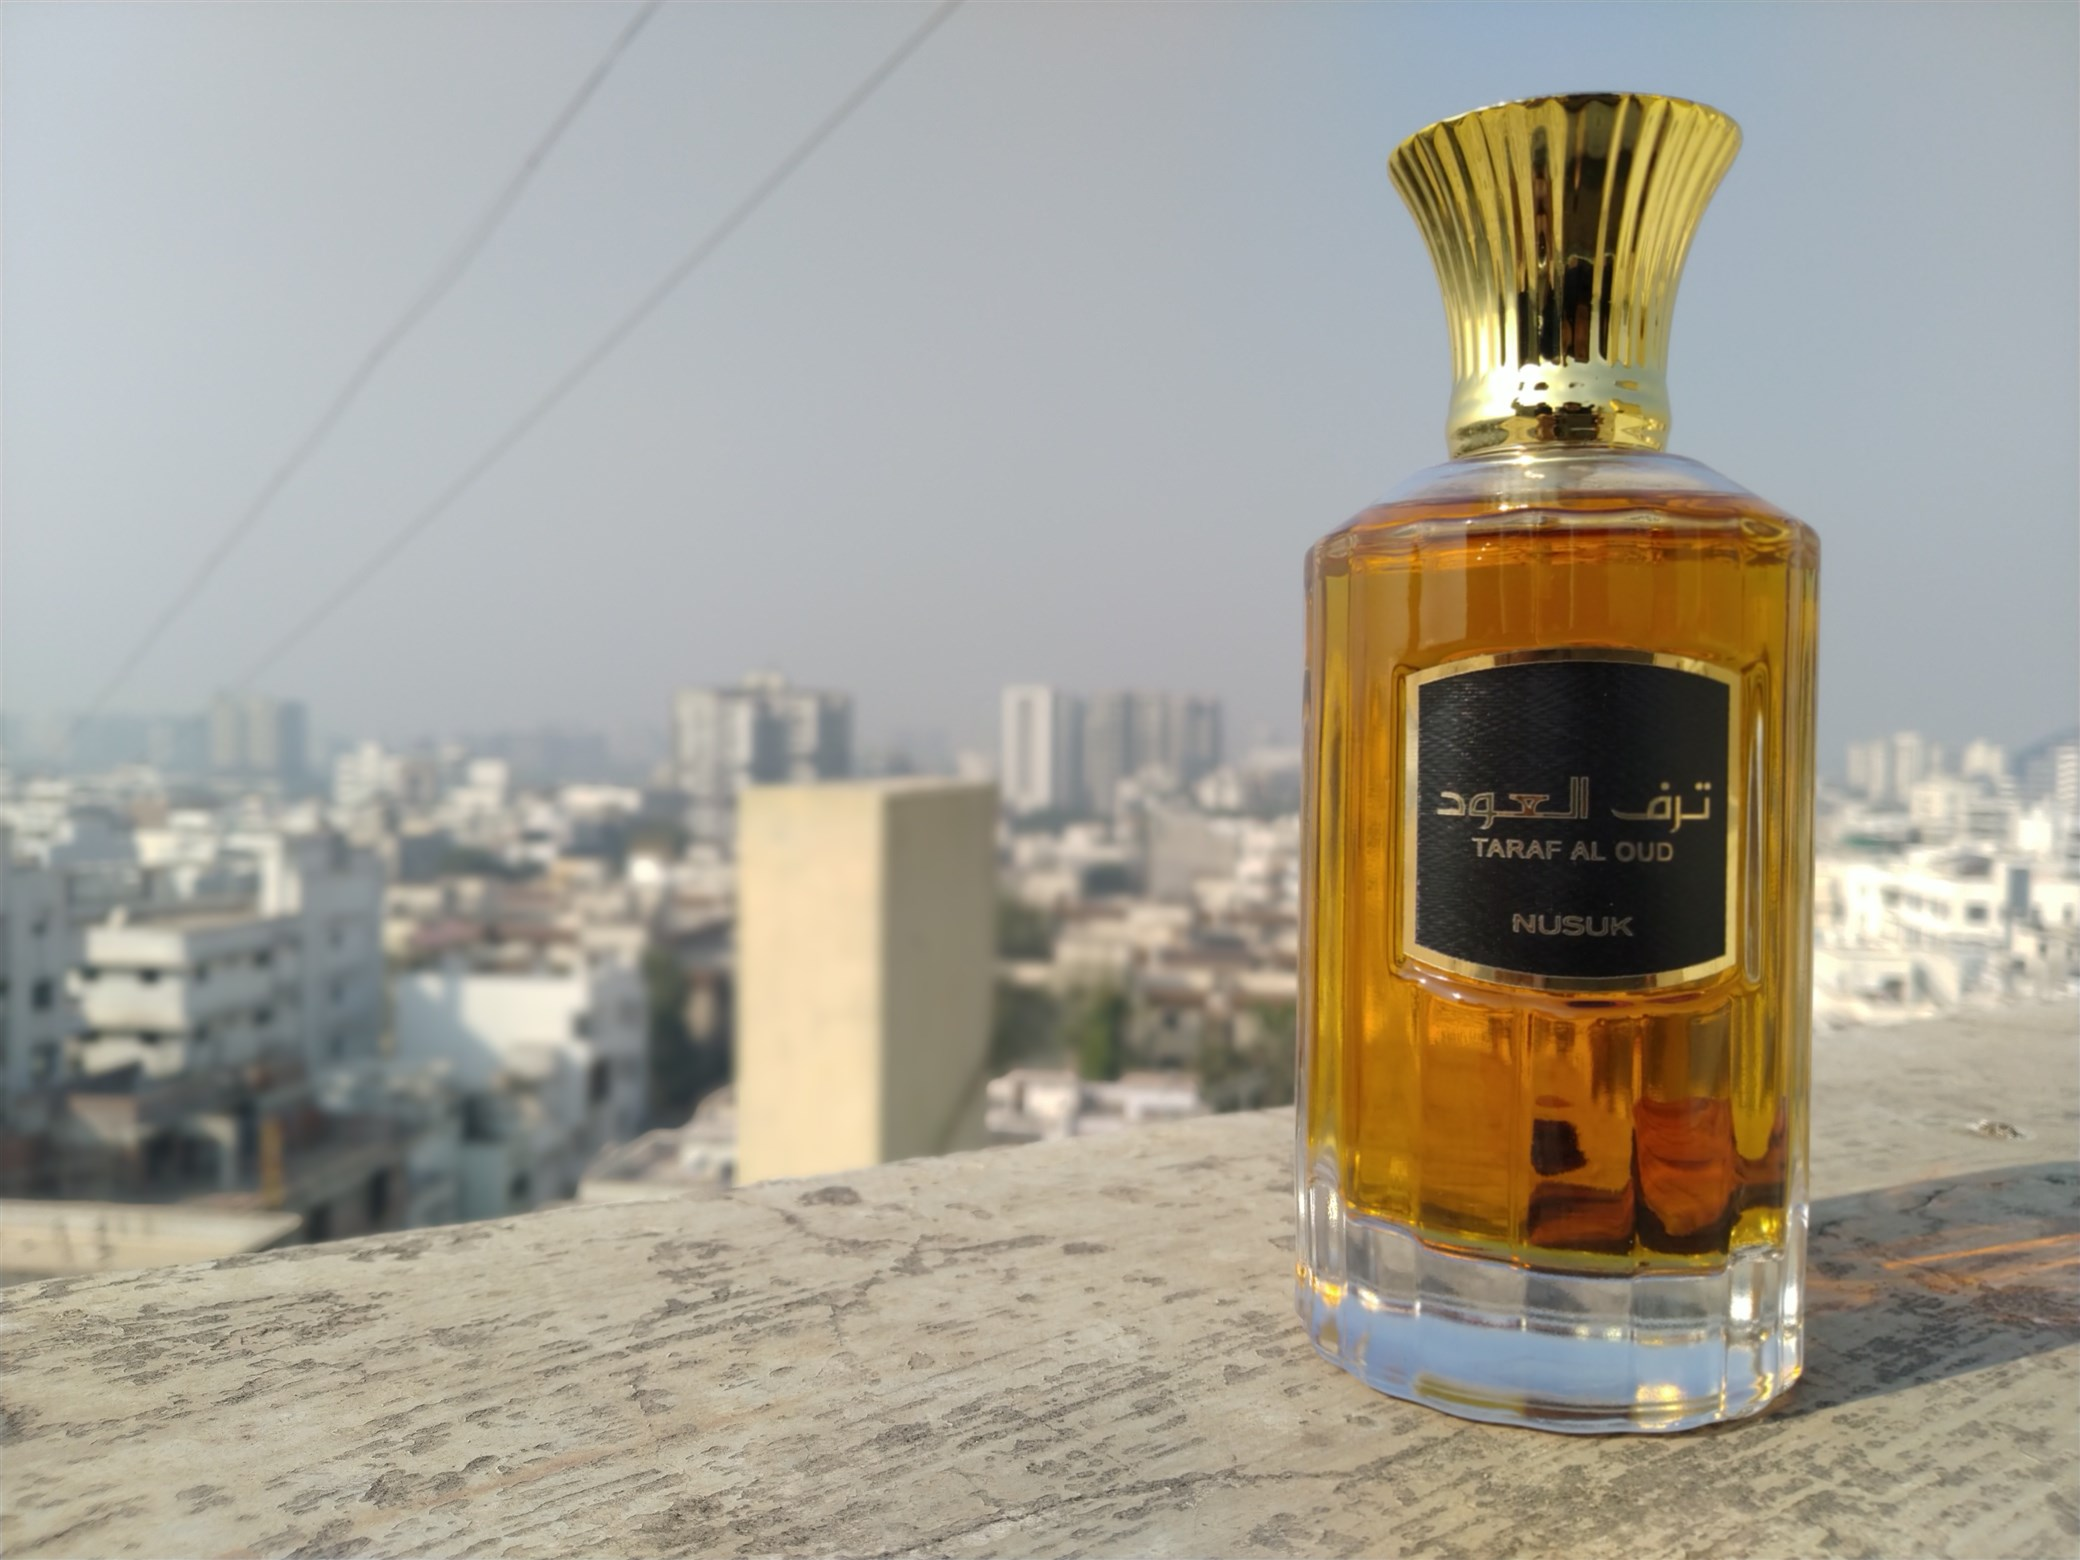 nusuk-traf-al-oud-for-men-and-women-perfume